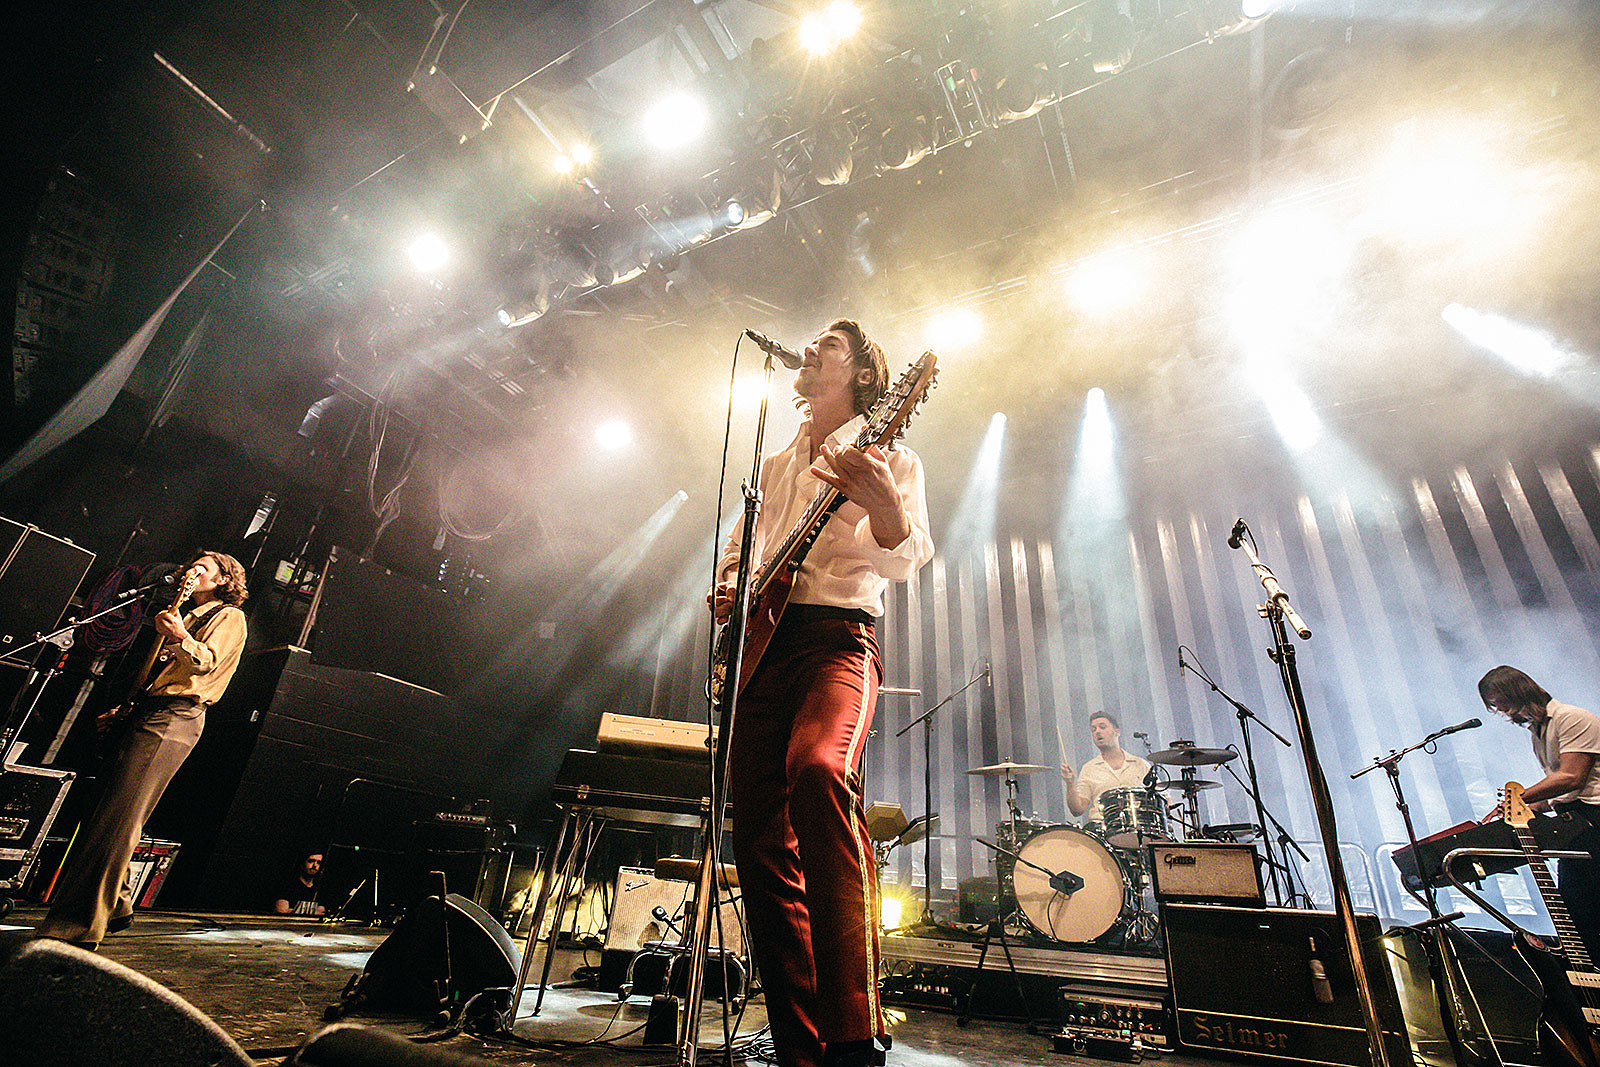 Alex Turner compares 'Tranquility Base Hotel + Casino' to Arctic Monkeys' debut album